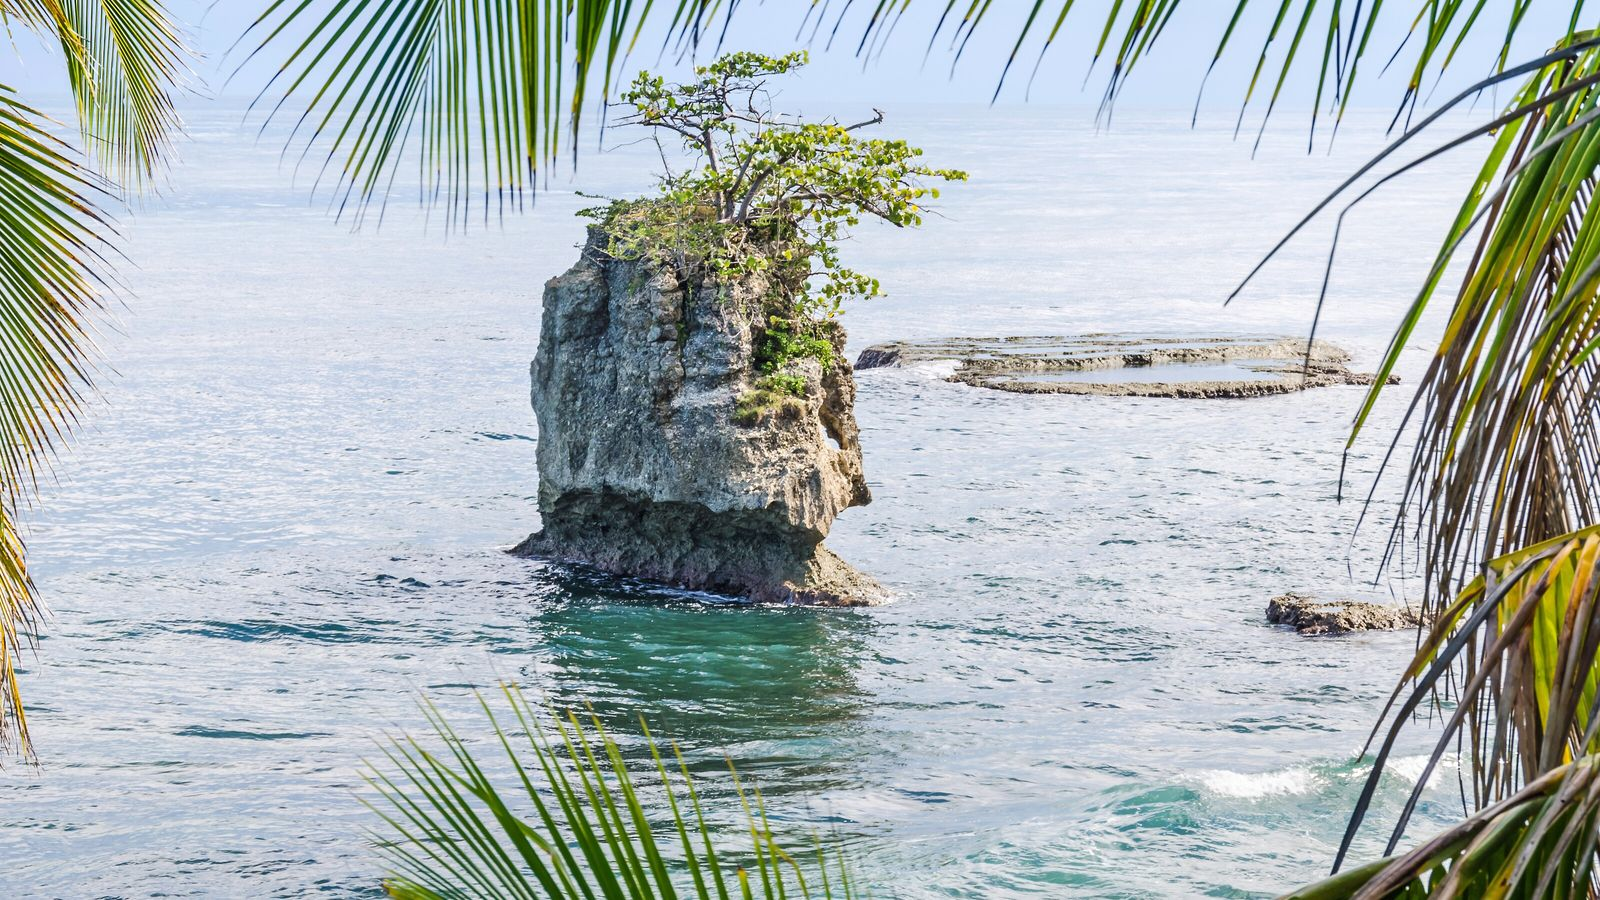 Less explored than the Pacific coast, Costa Rica's Caribbean shoreline is carved with secluded coves and ...